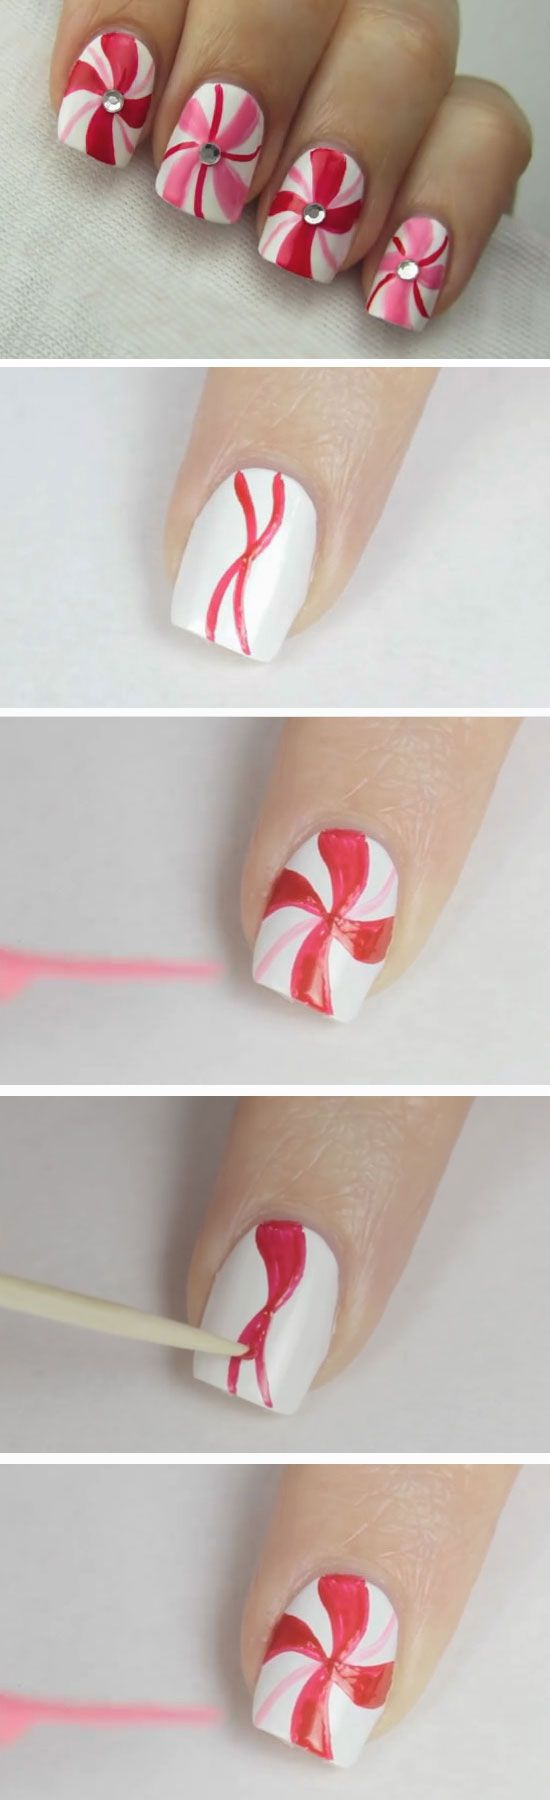 20+ DIY Christmas Nail Art Ideas for Short Nails | Short nails, DIY ...